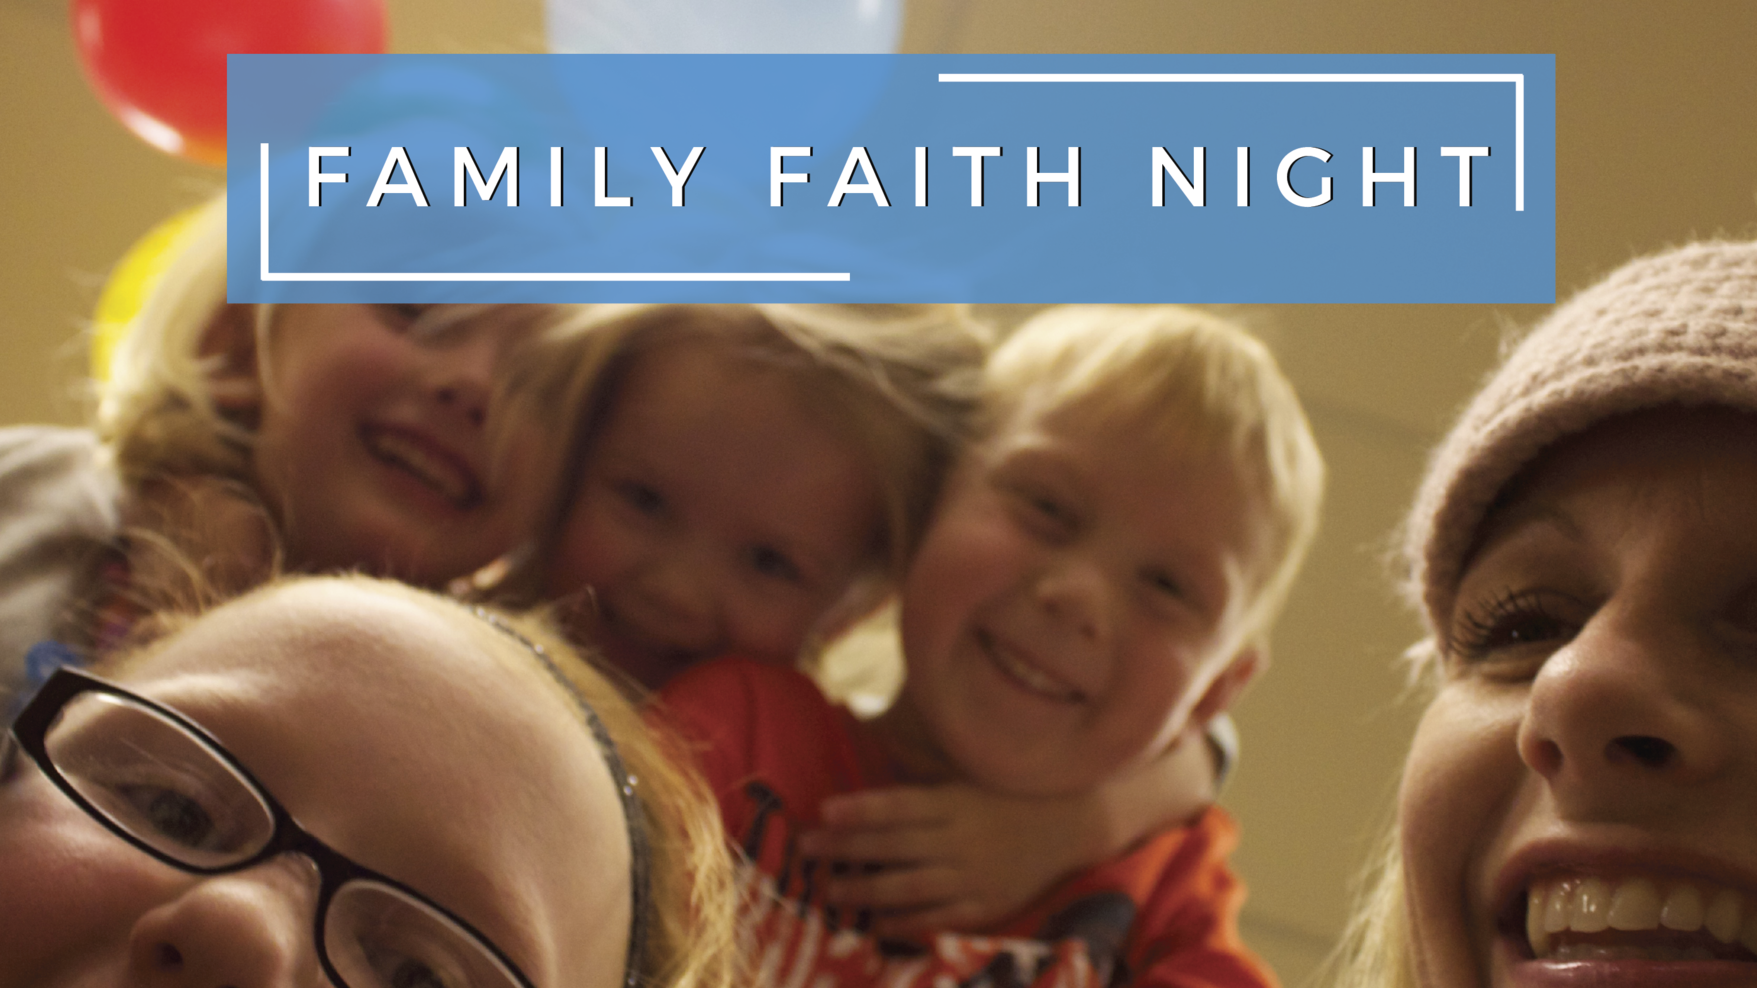 FAMILY FAITH NIGHT